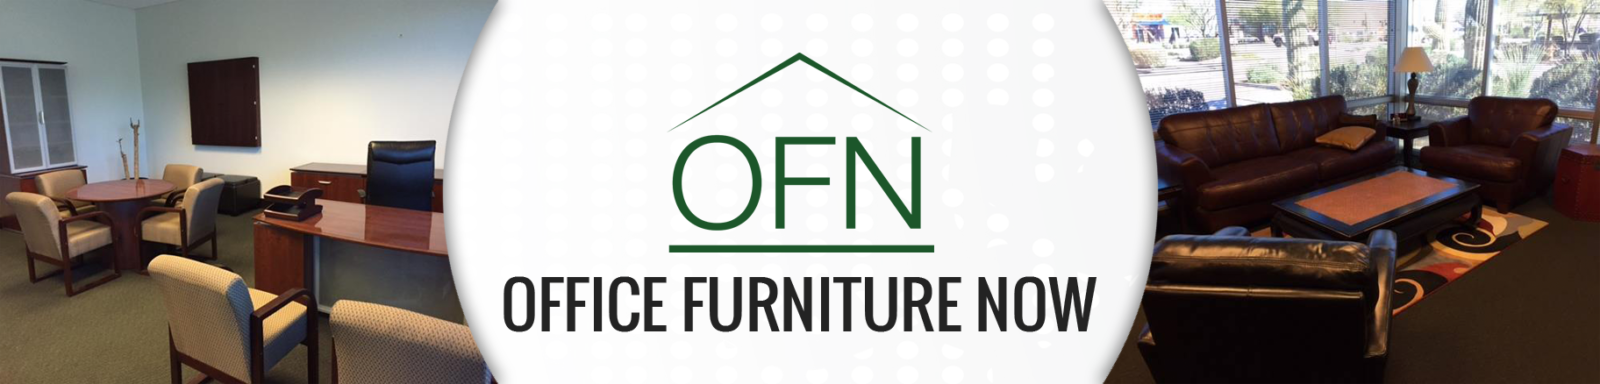 We Offer A Wide Range Of Associated Services: Delivery, Installation,Setup  And Furniture Liquidation #Office #Furniture #Phoenix #OFNPHX #Desks #Chairs